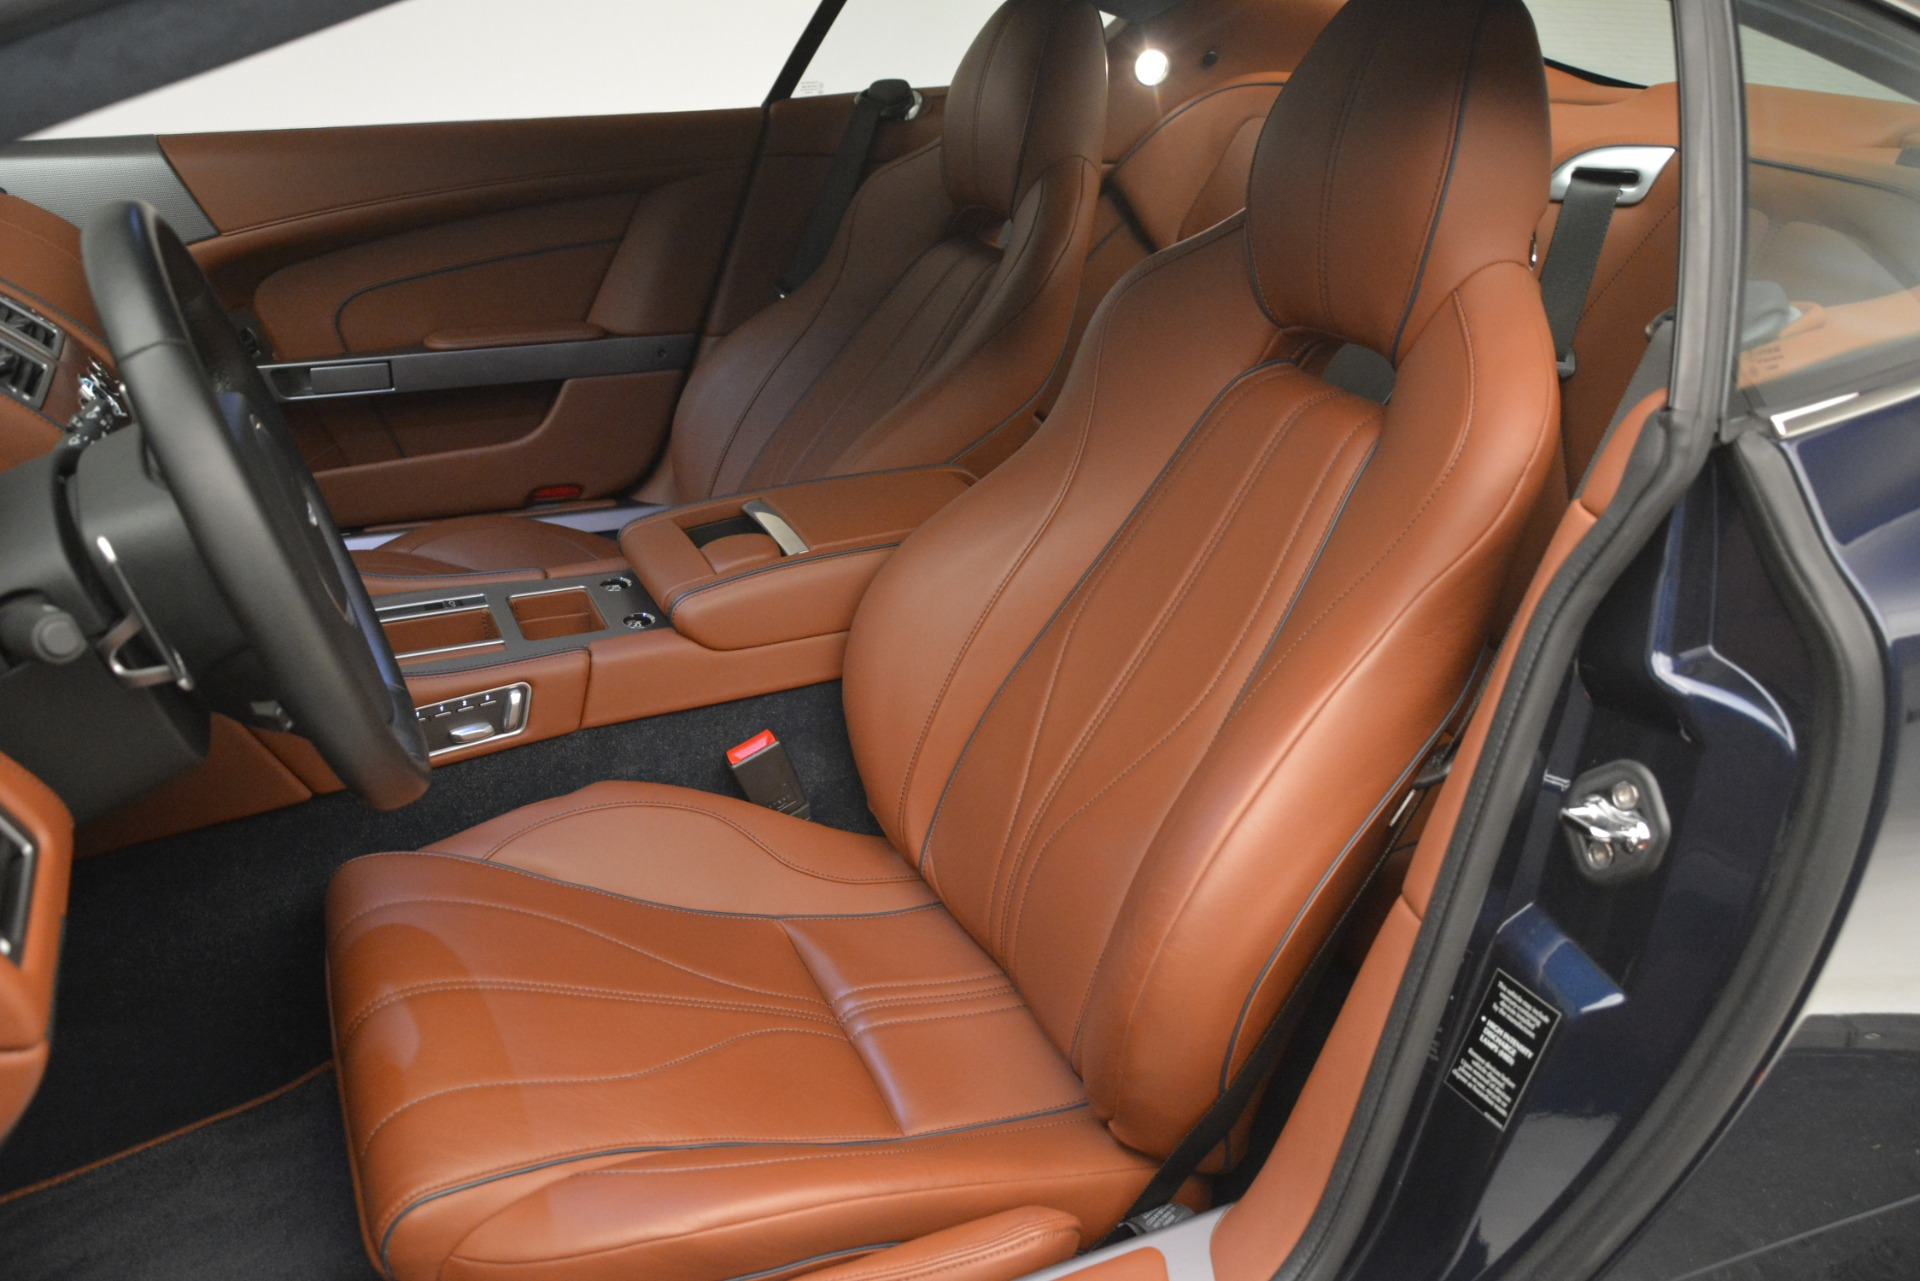 Used 2014 Aston Martin DB9 Coupe For Sale In Westport, CT 3010_p16